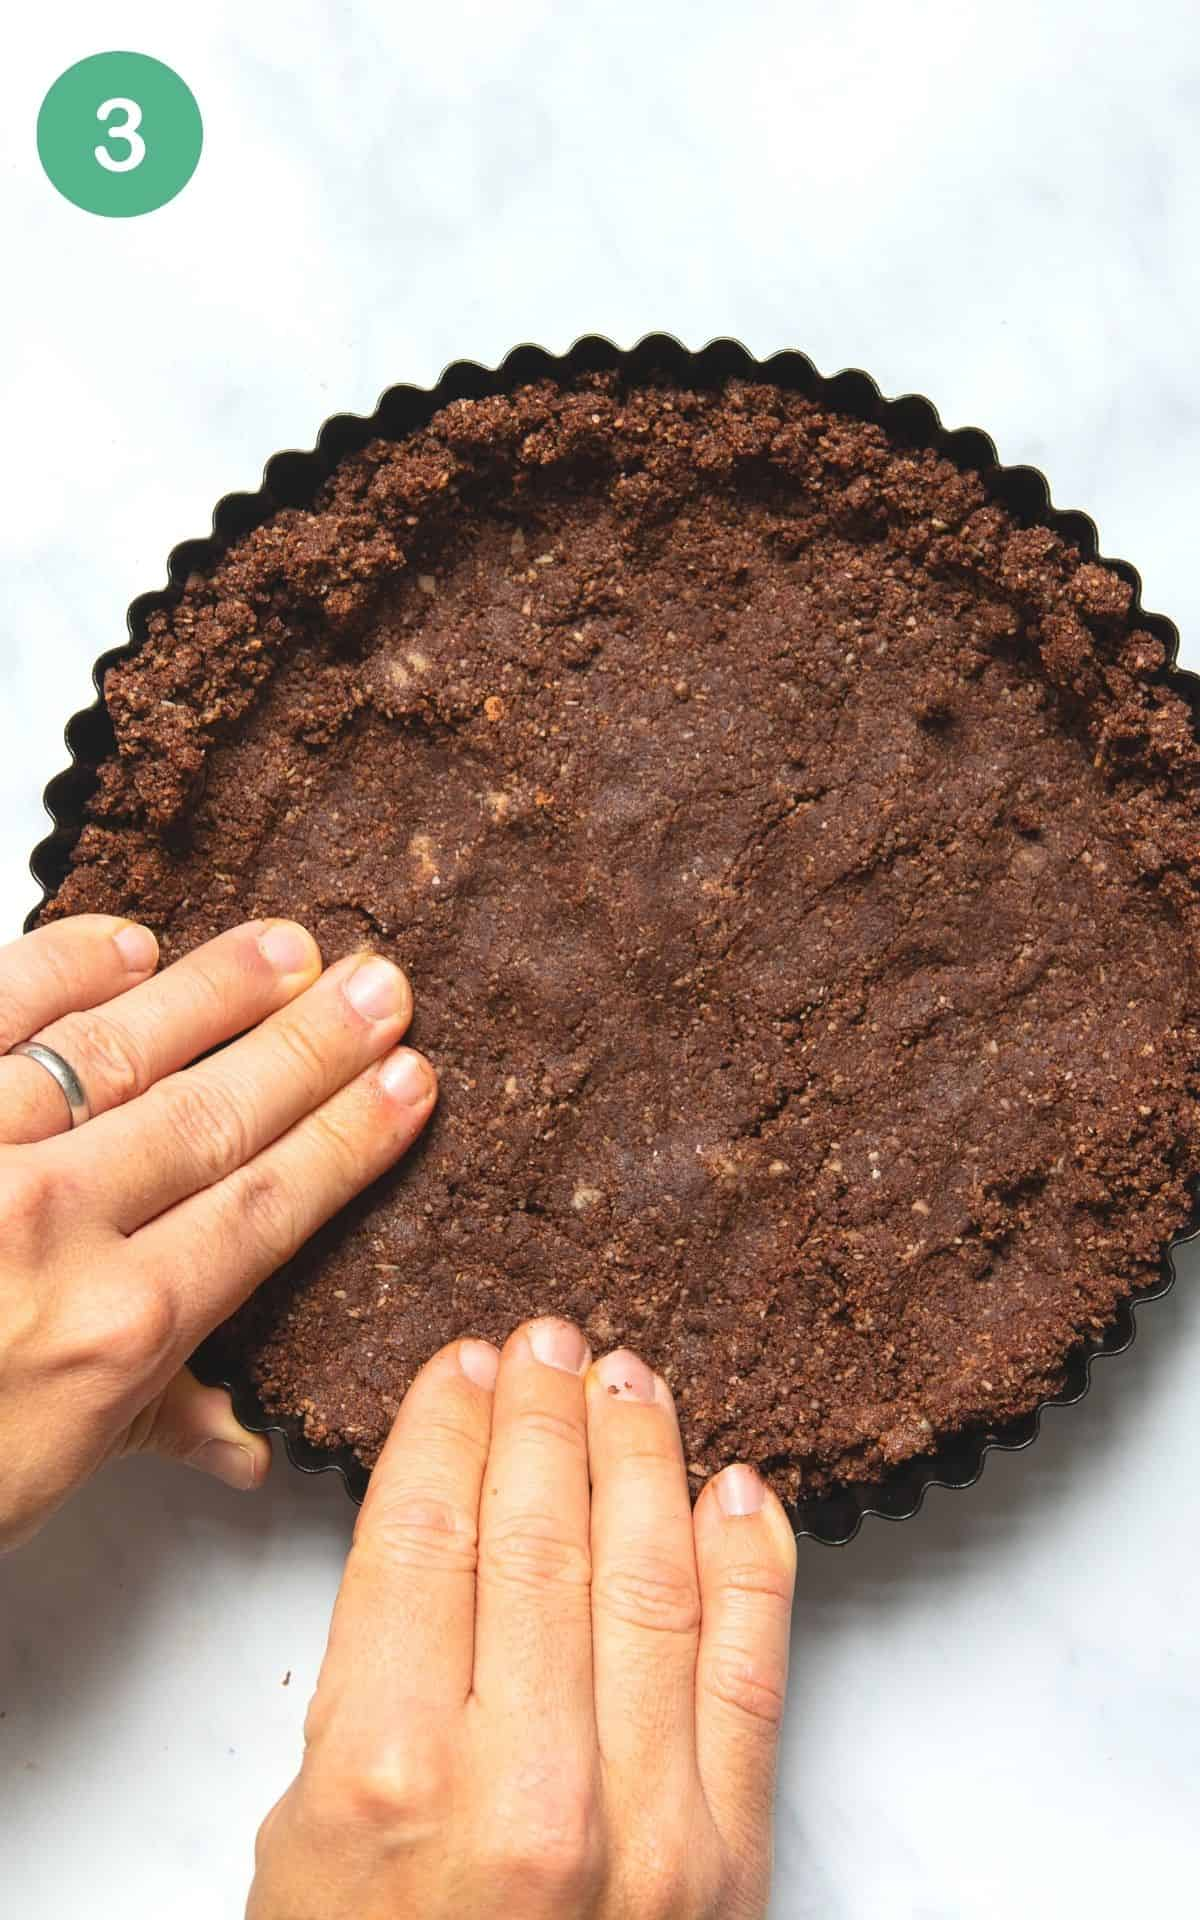 Instructional photo showing the tart crust being pressed into a tart tin.